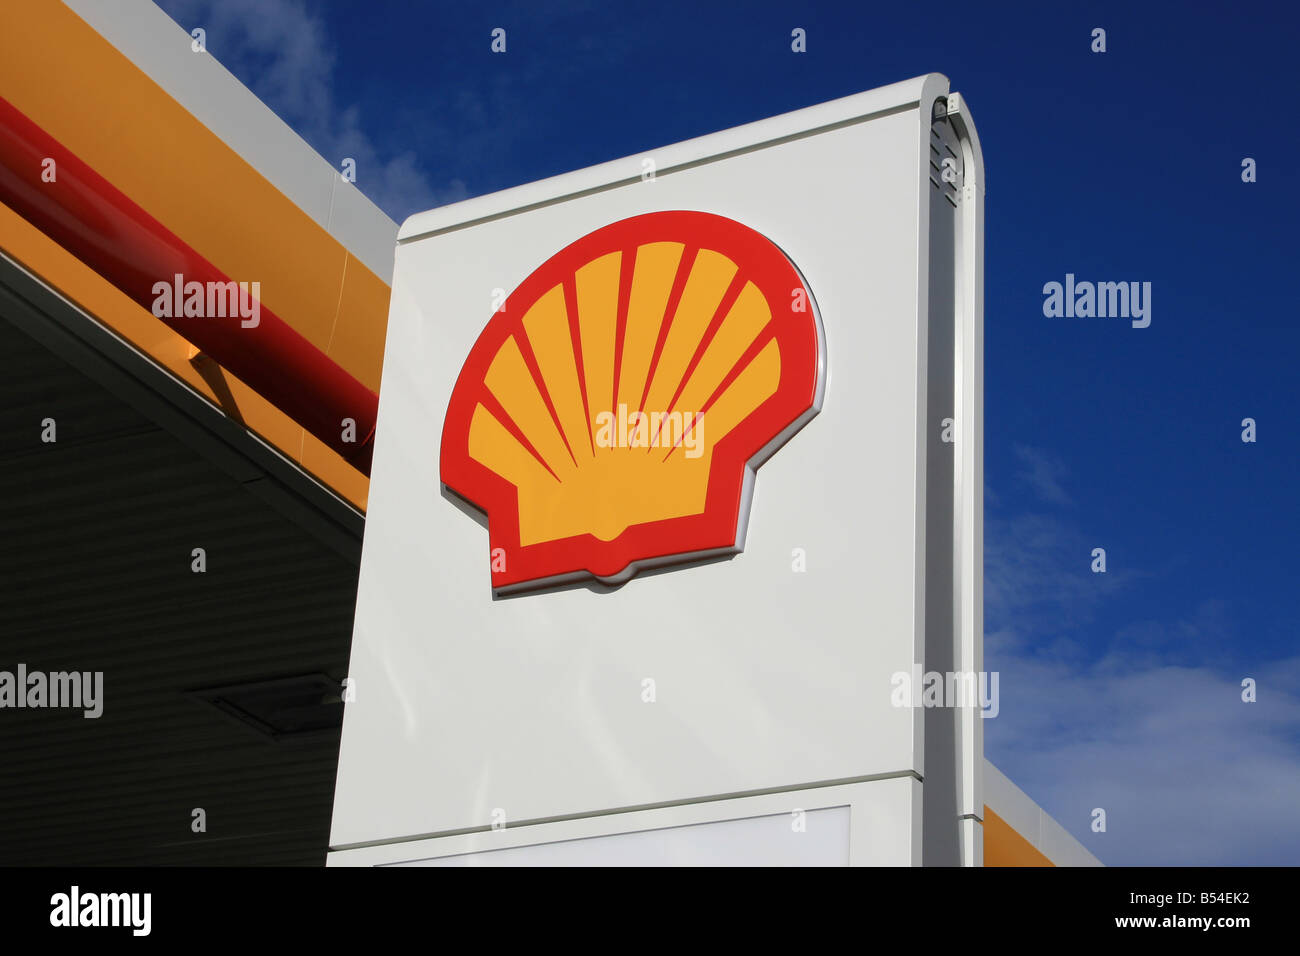 SHELL - Stock Image